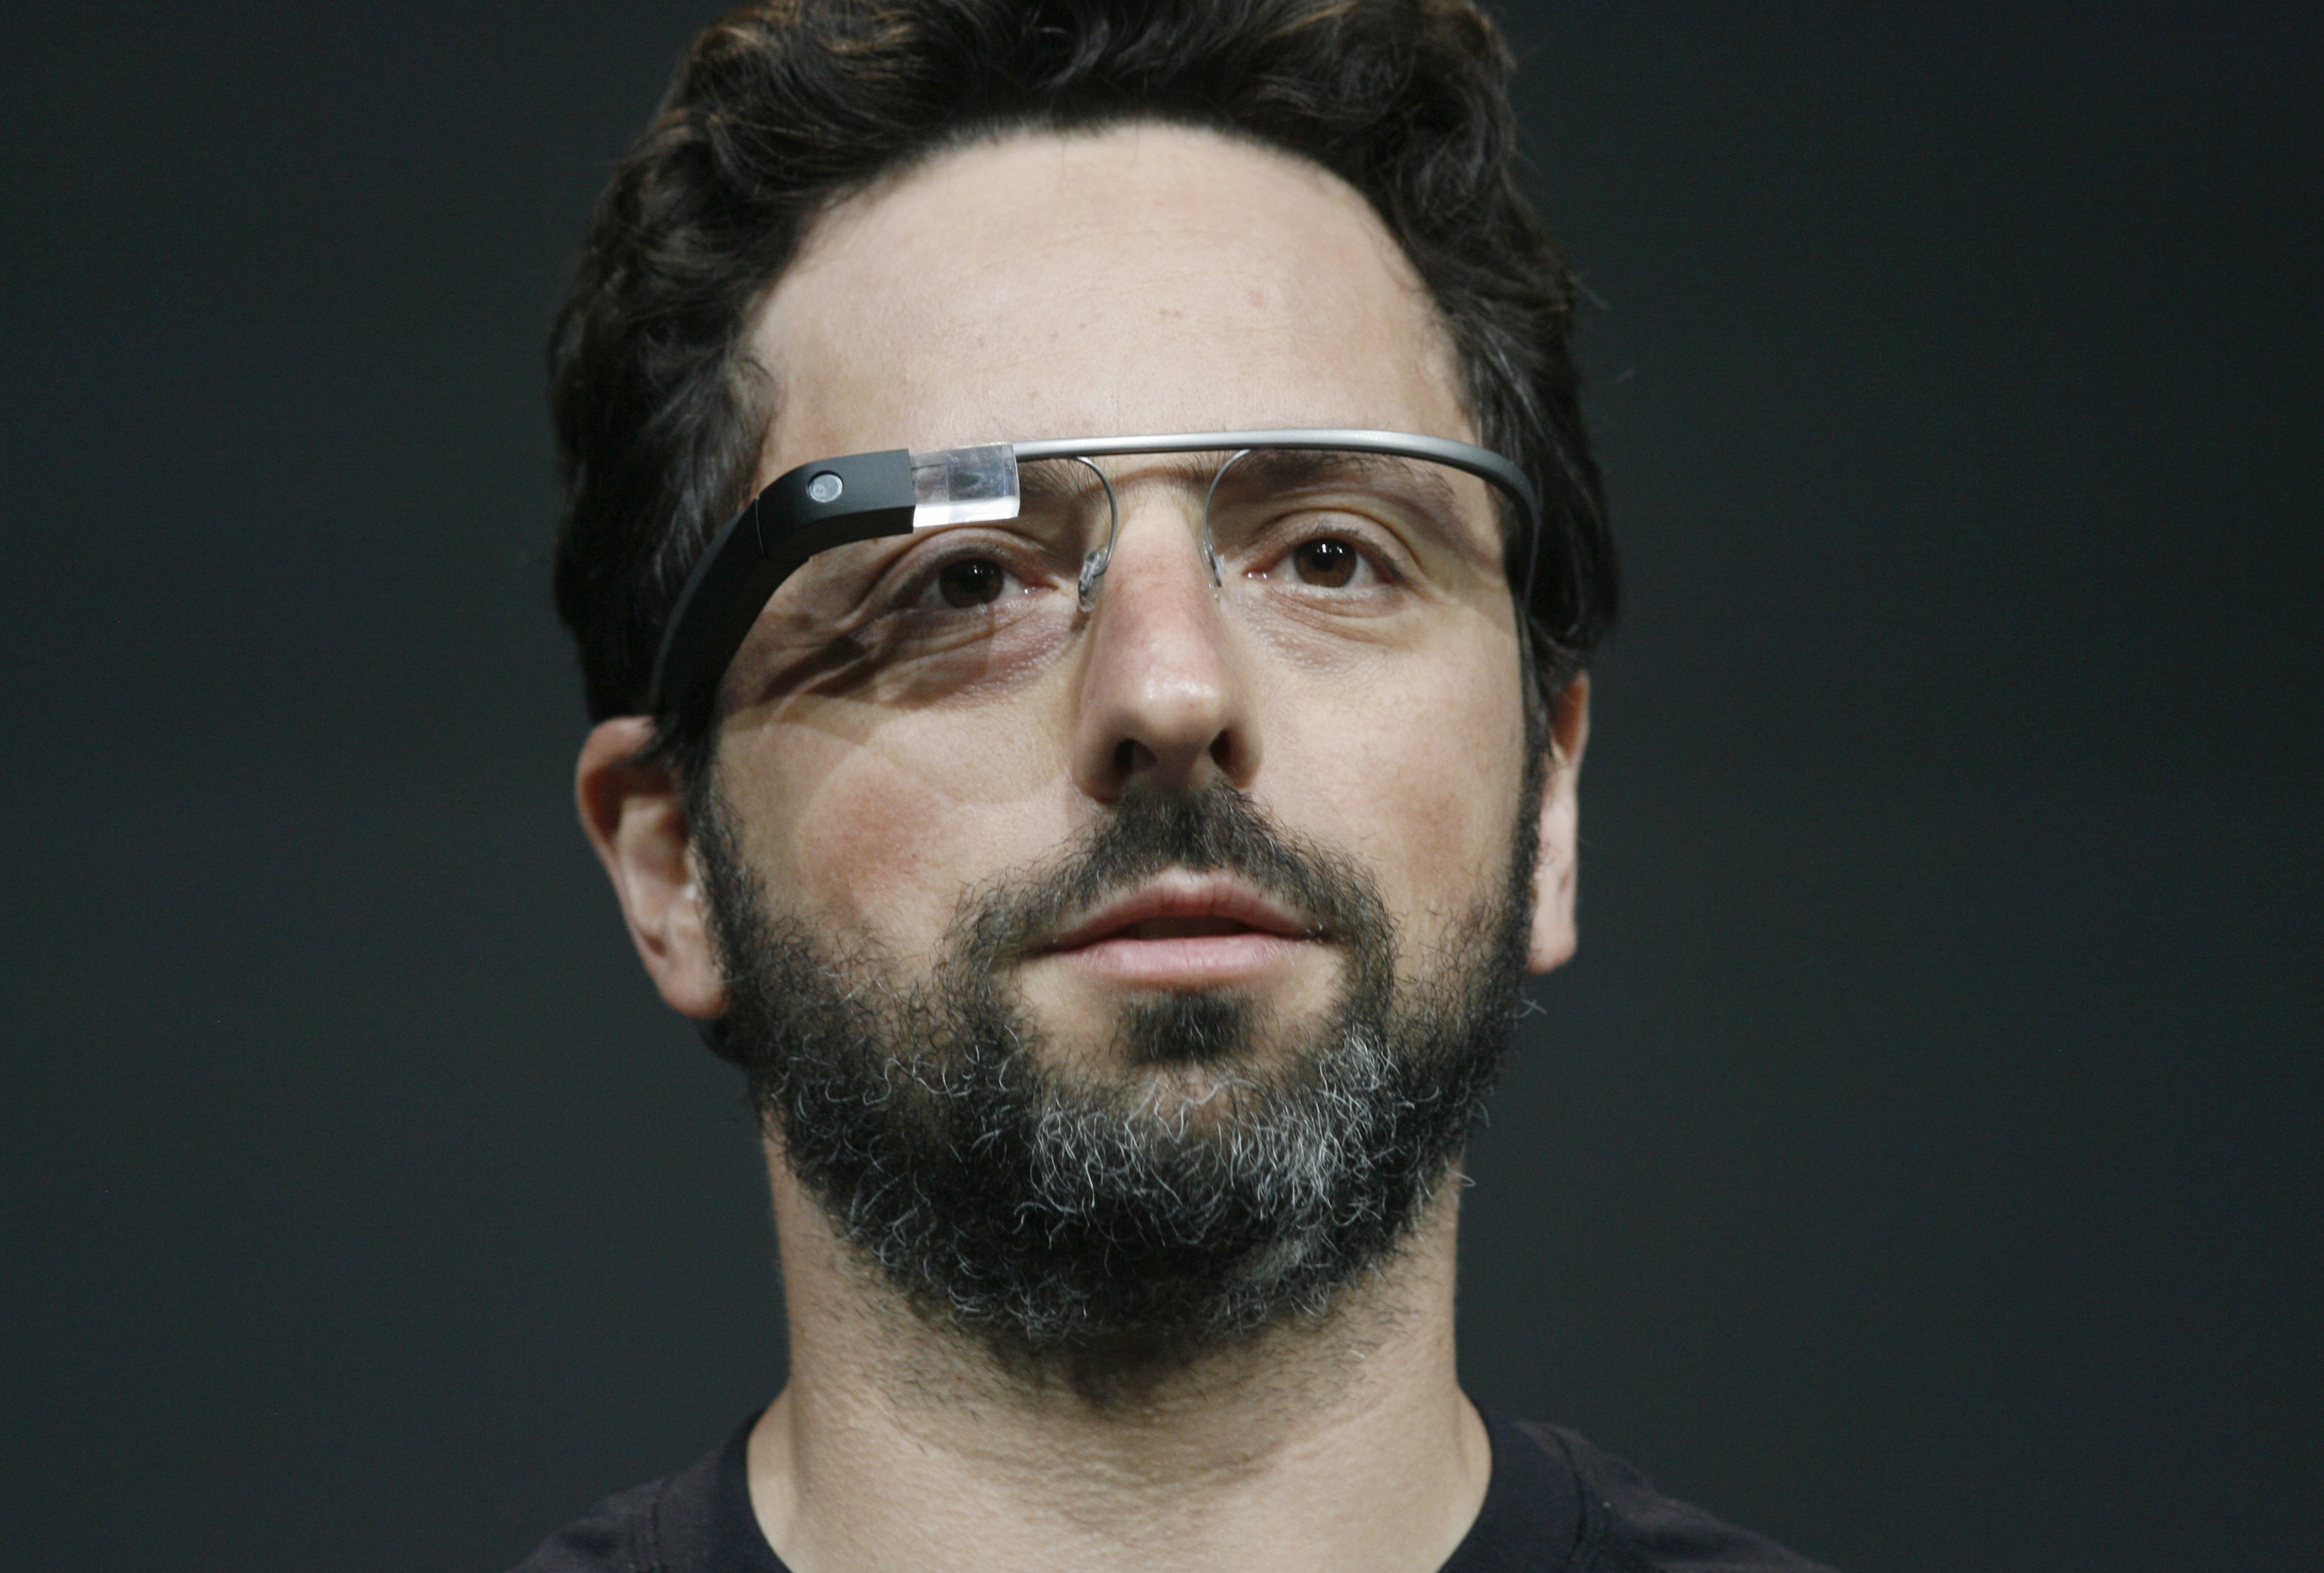 Sergey Brin wears Google Glass in 2012.